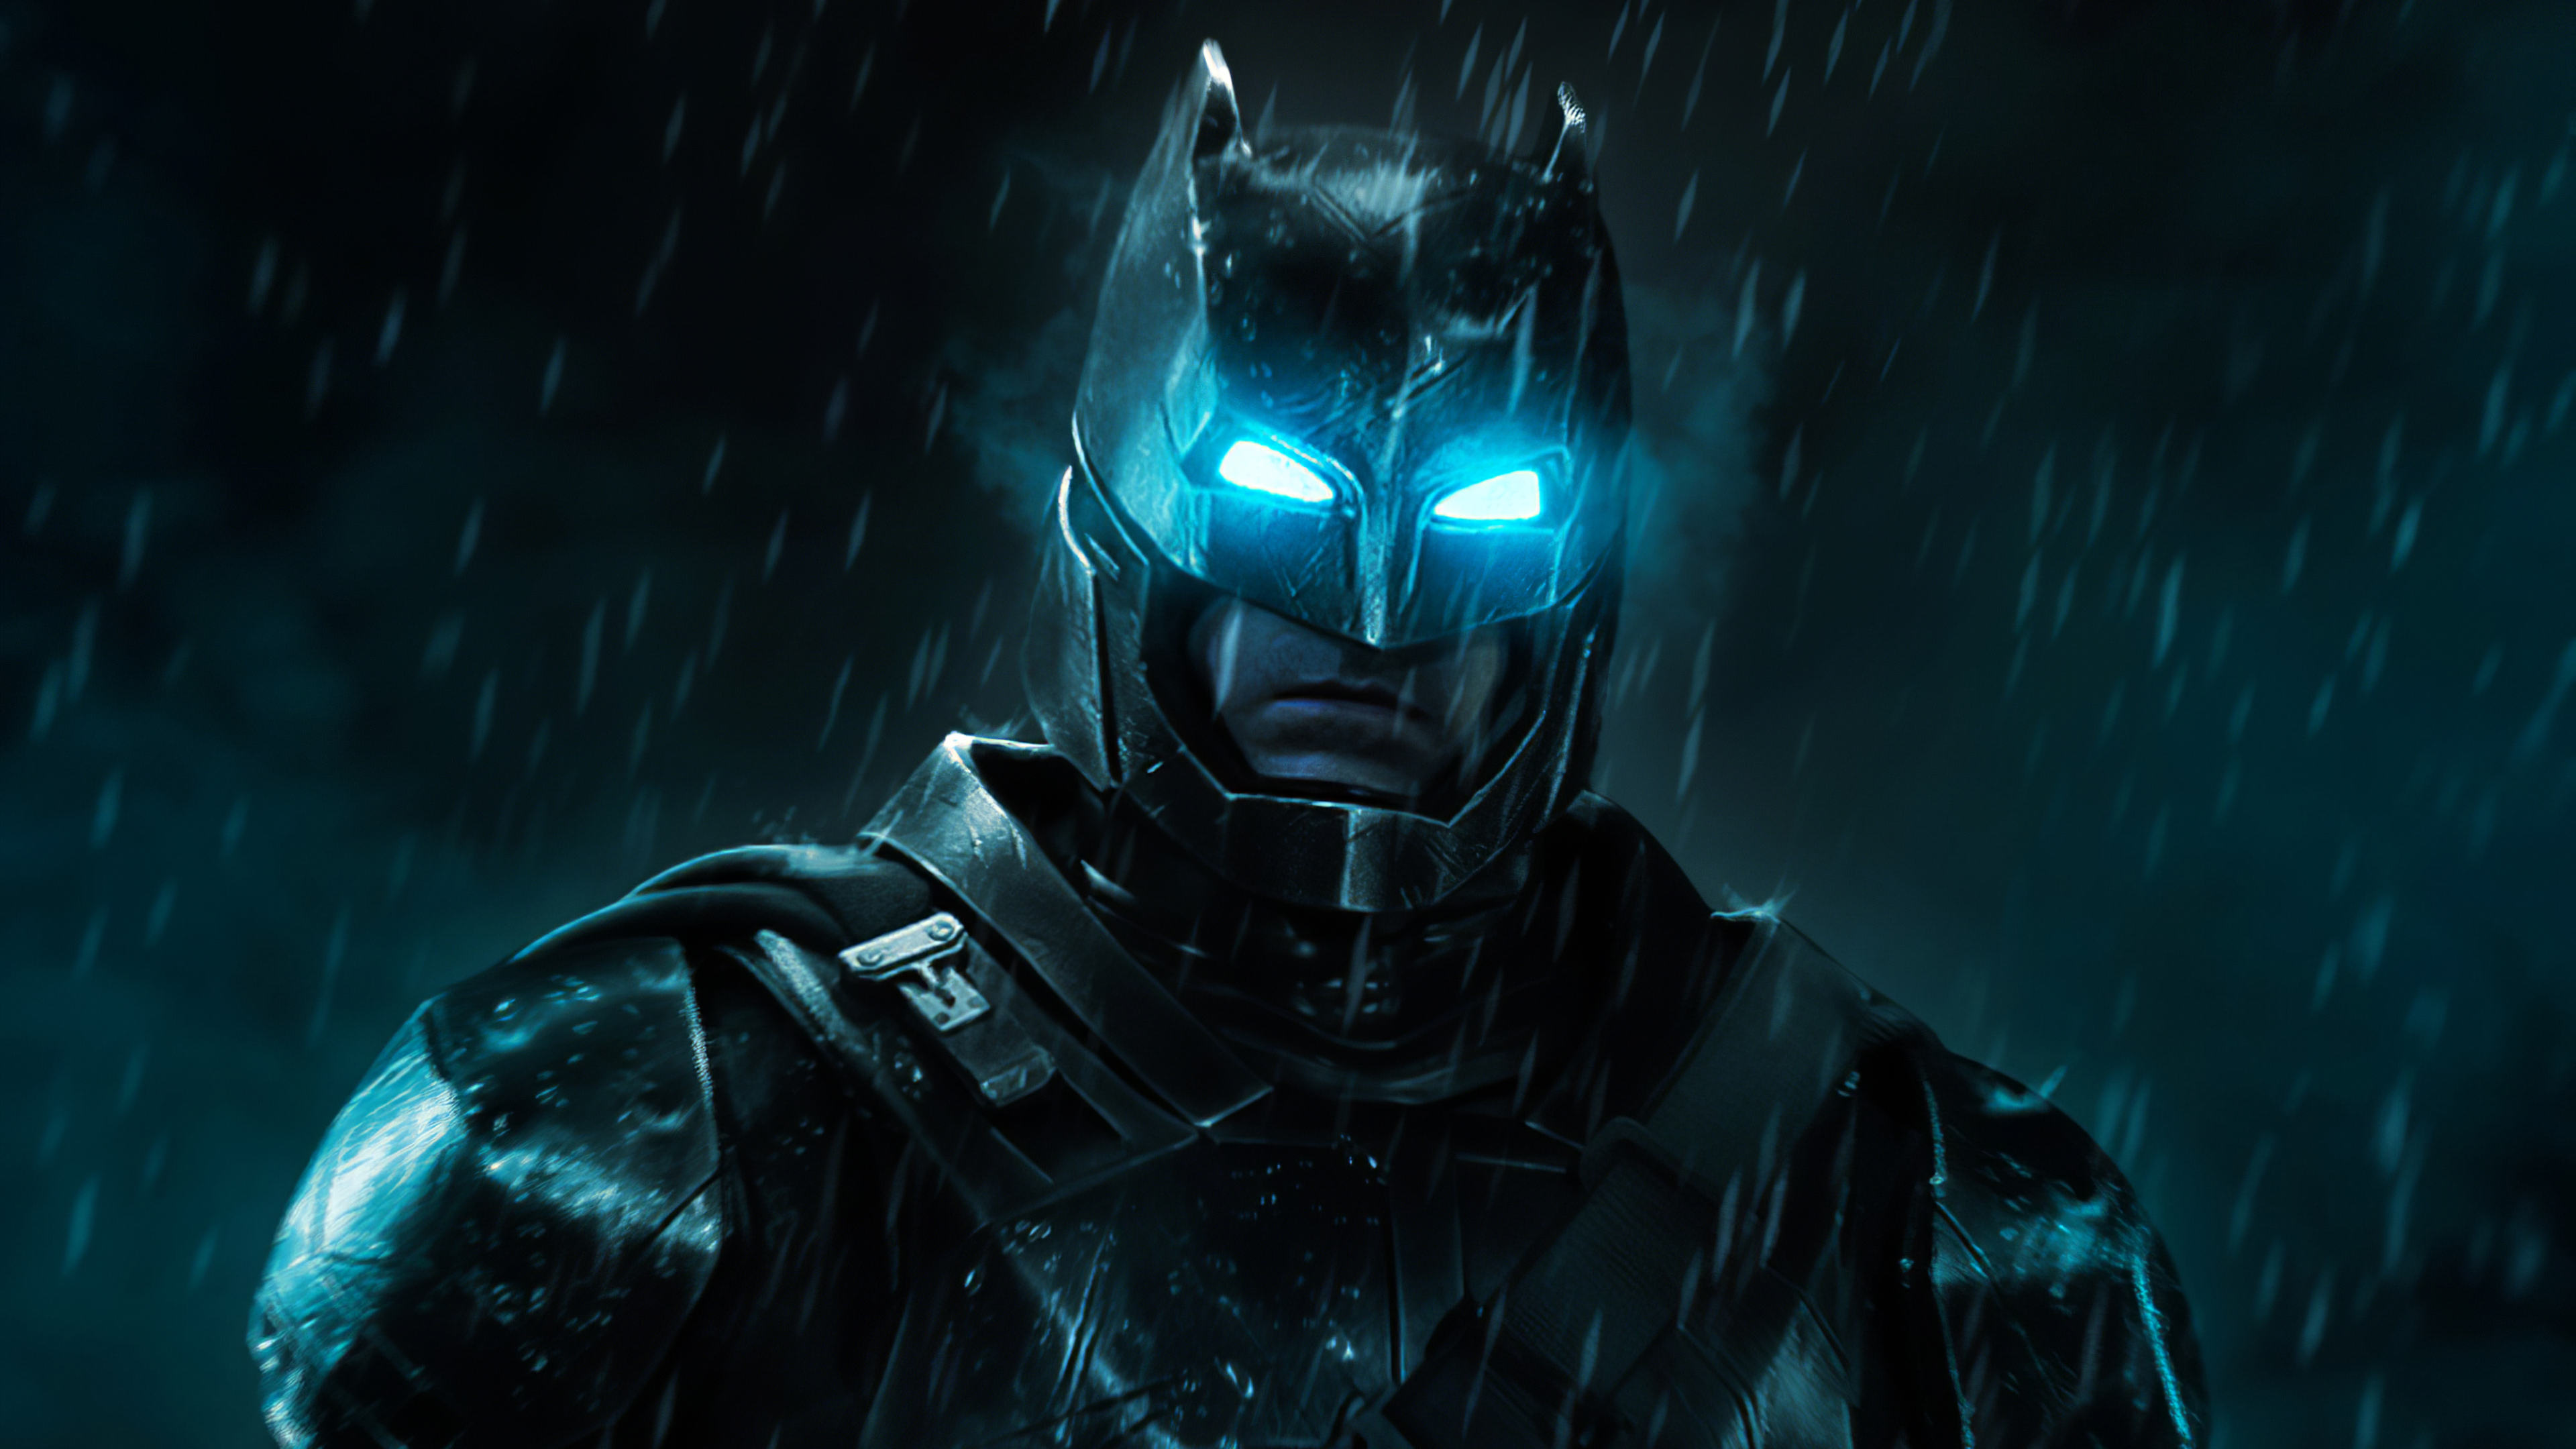 4k Batman Raining Hd Superheroes 4k Wallpapers Images Backgrounds Photos And Pictures